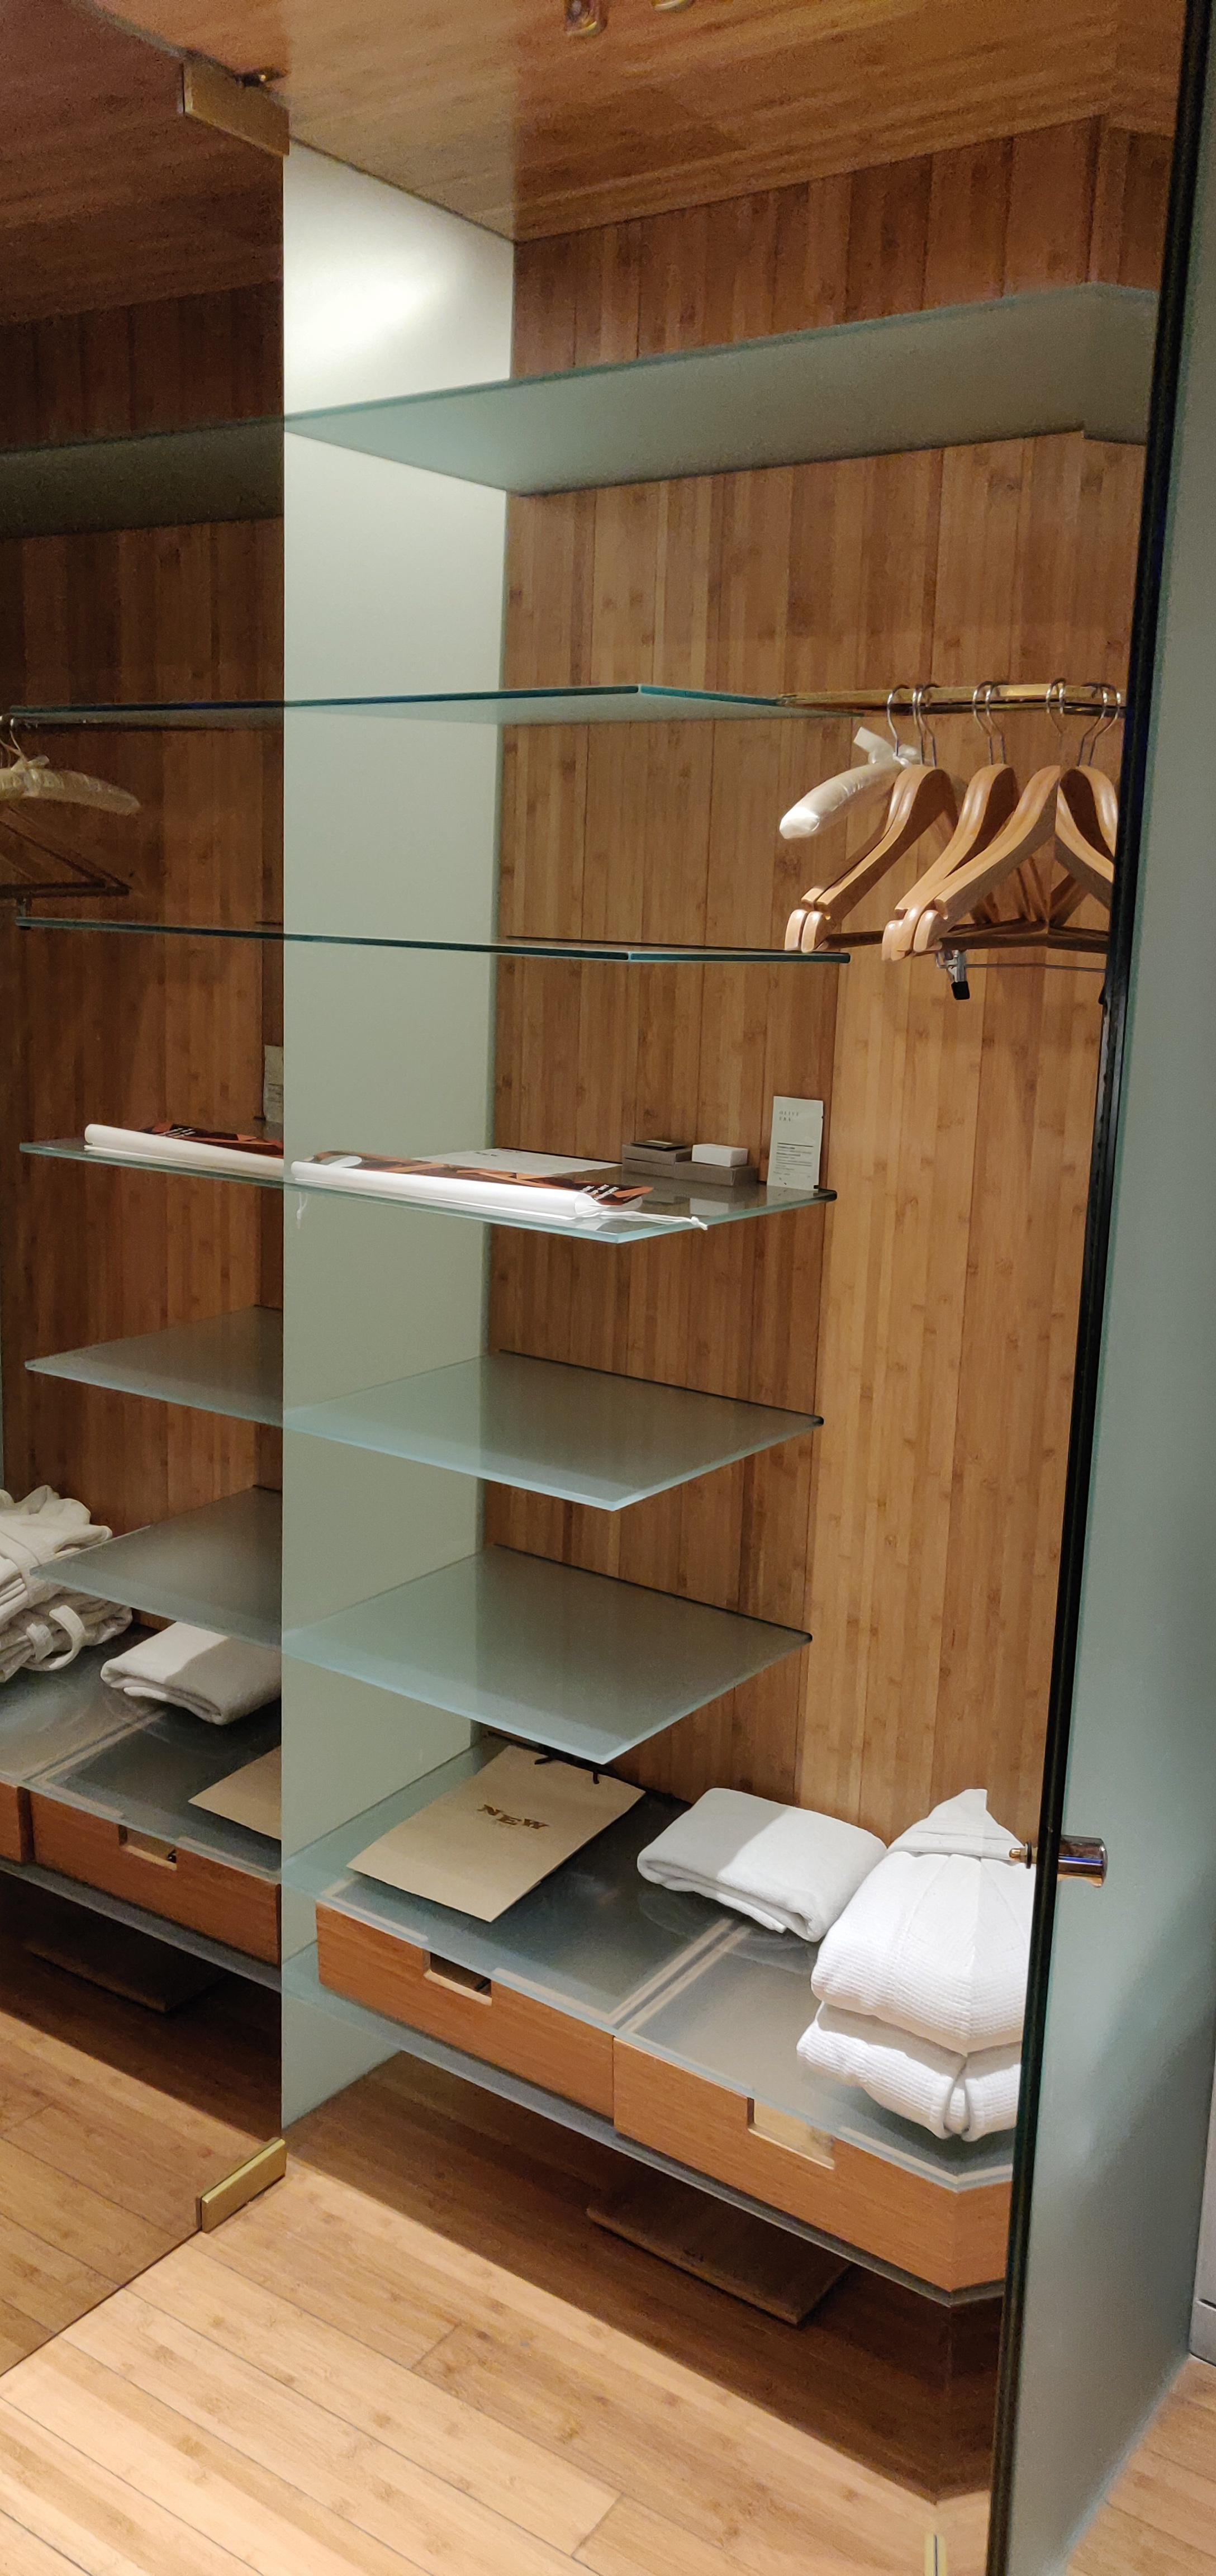 NEW Hotel, Athens - Cabinet